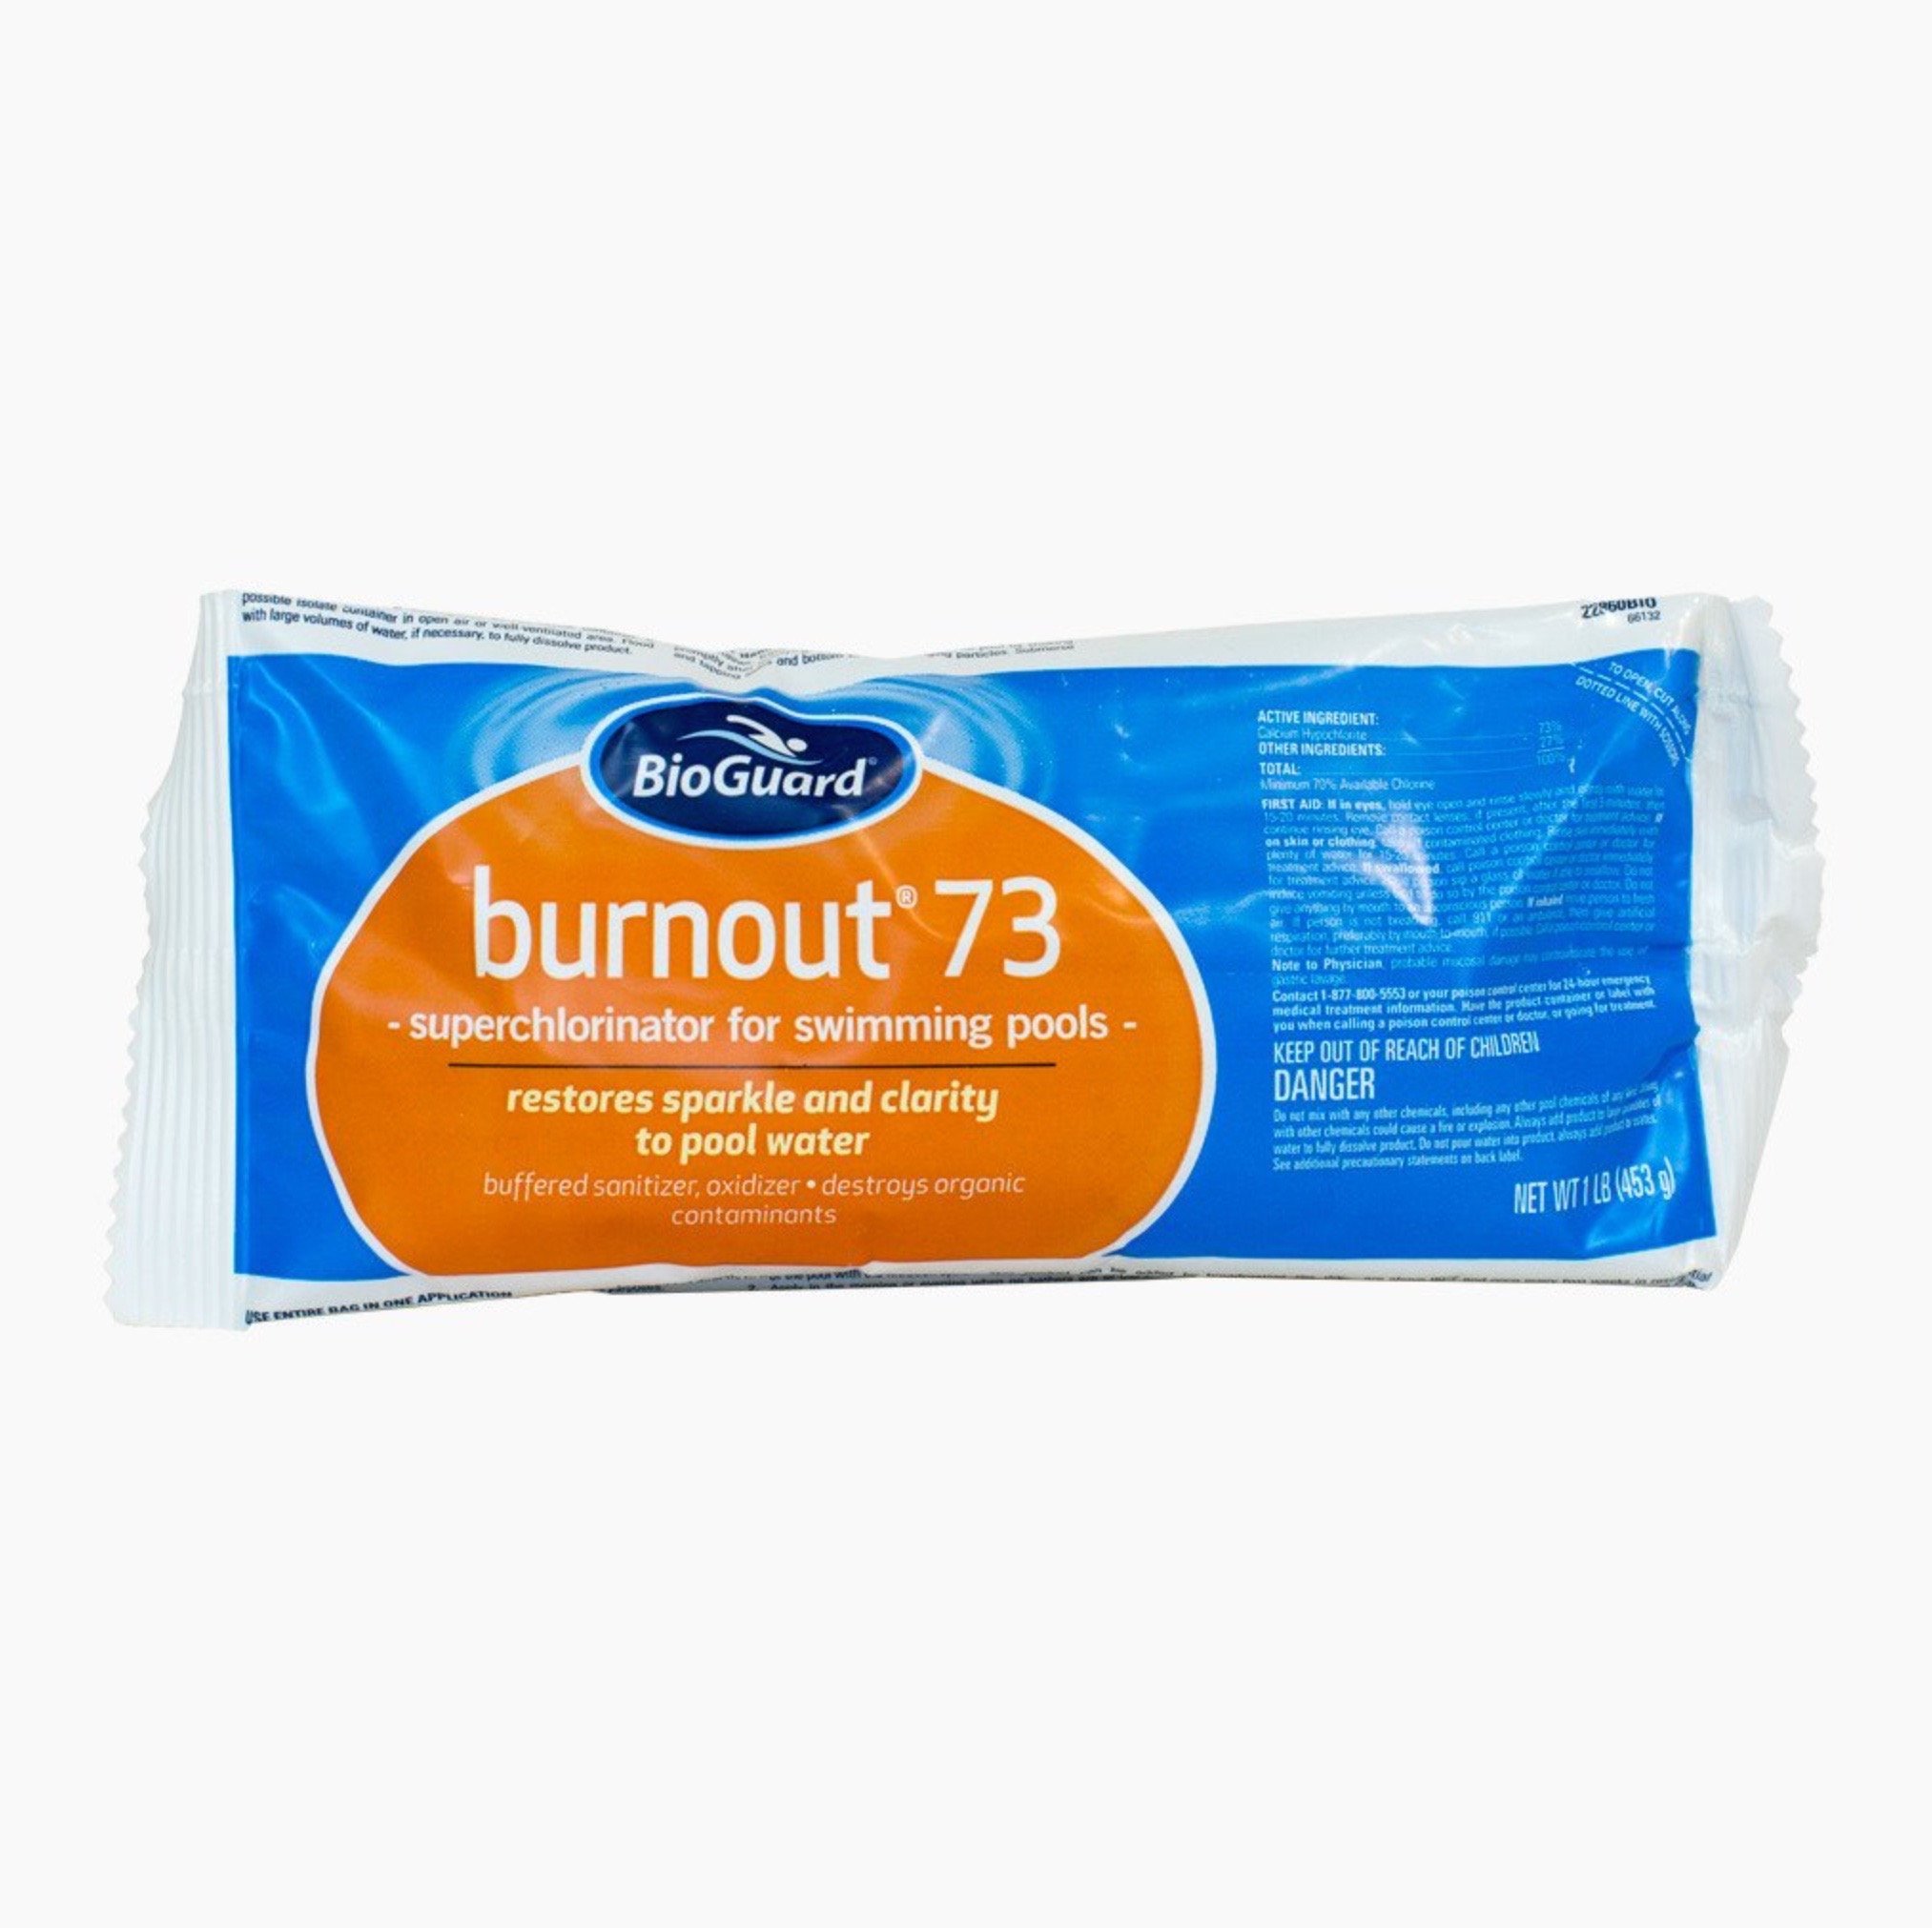 BioGuard Burnout 73 (1 lb) (12 Pack) by BioGuard